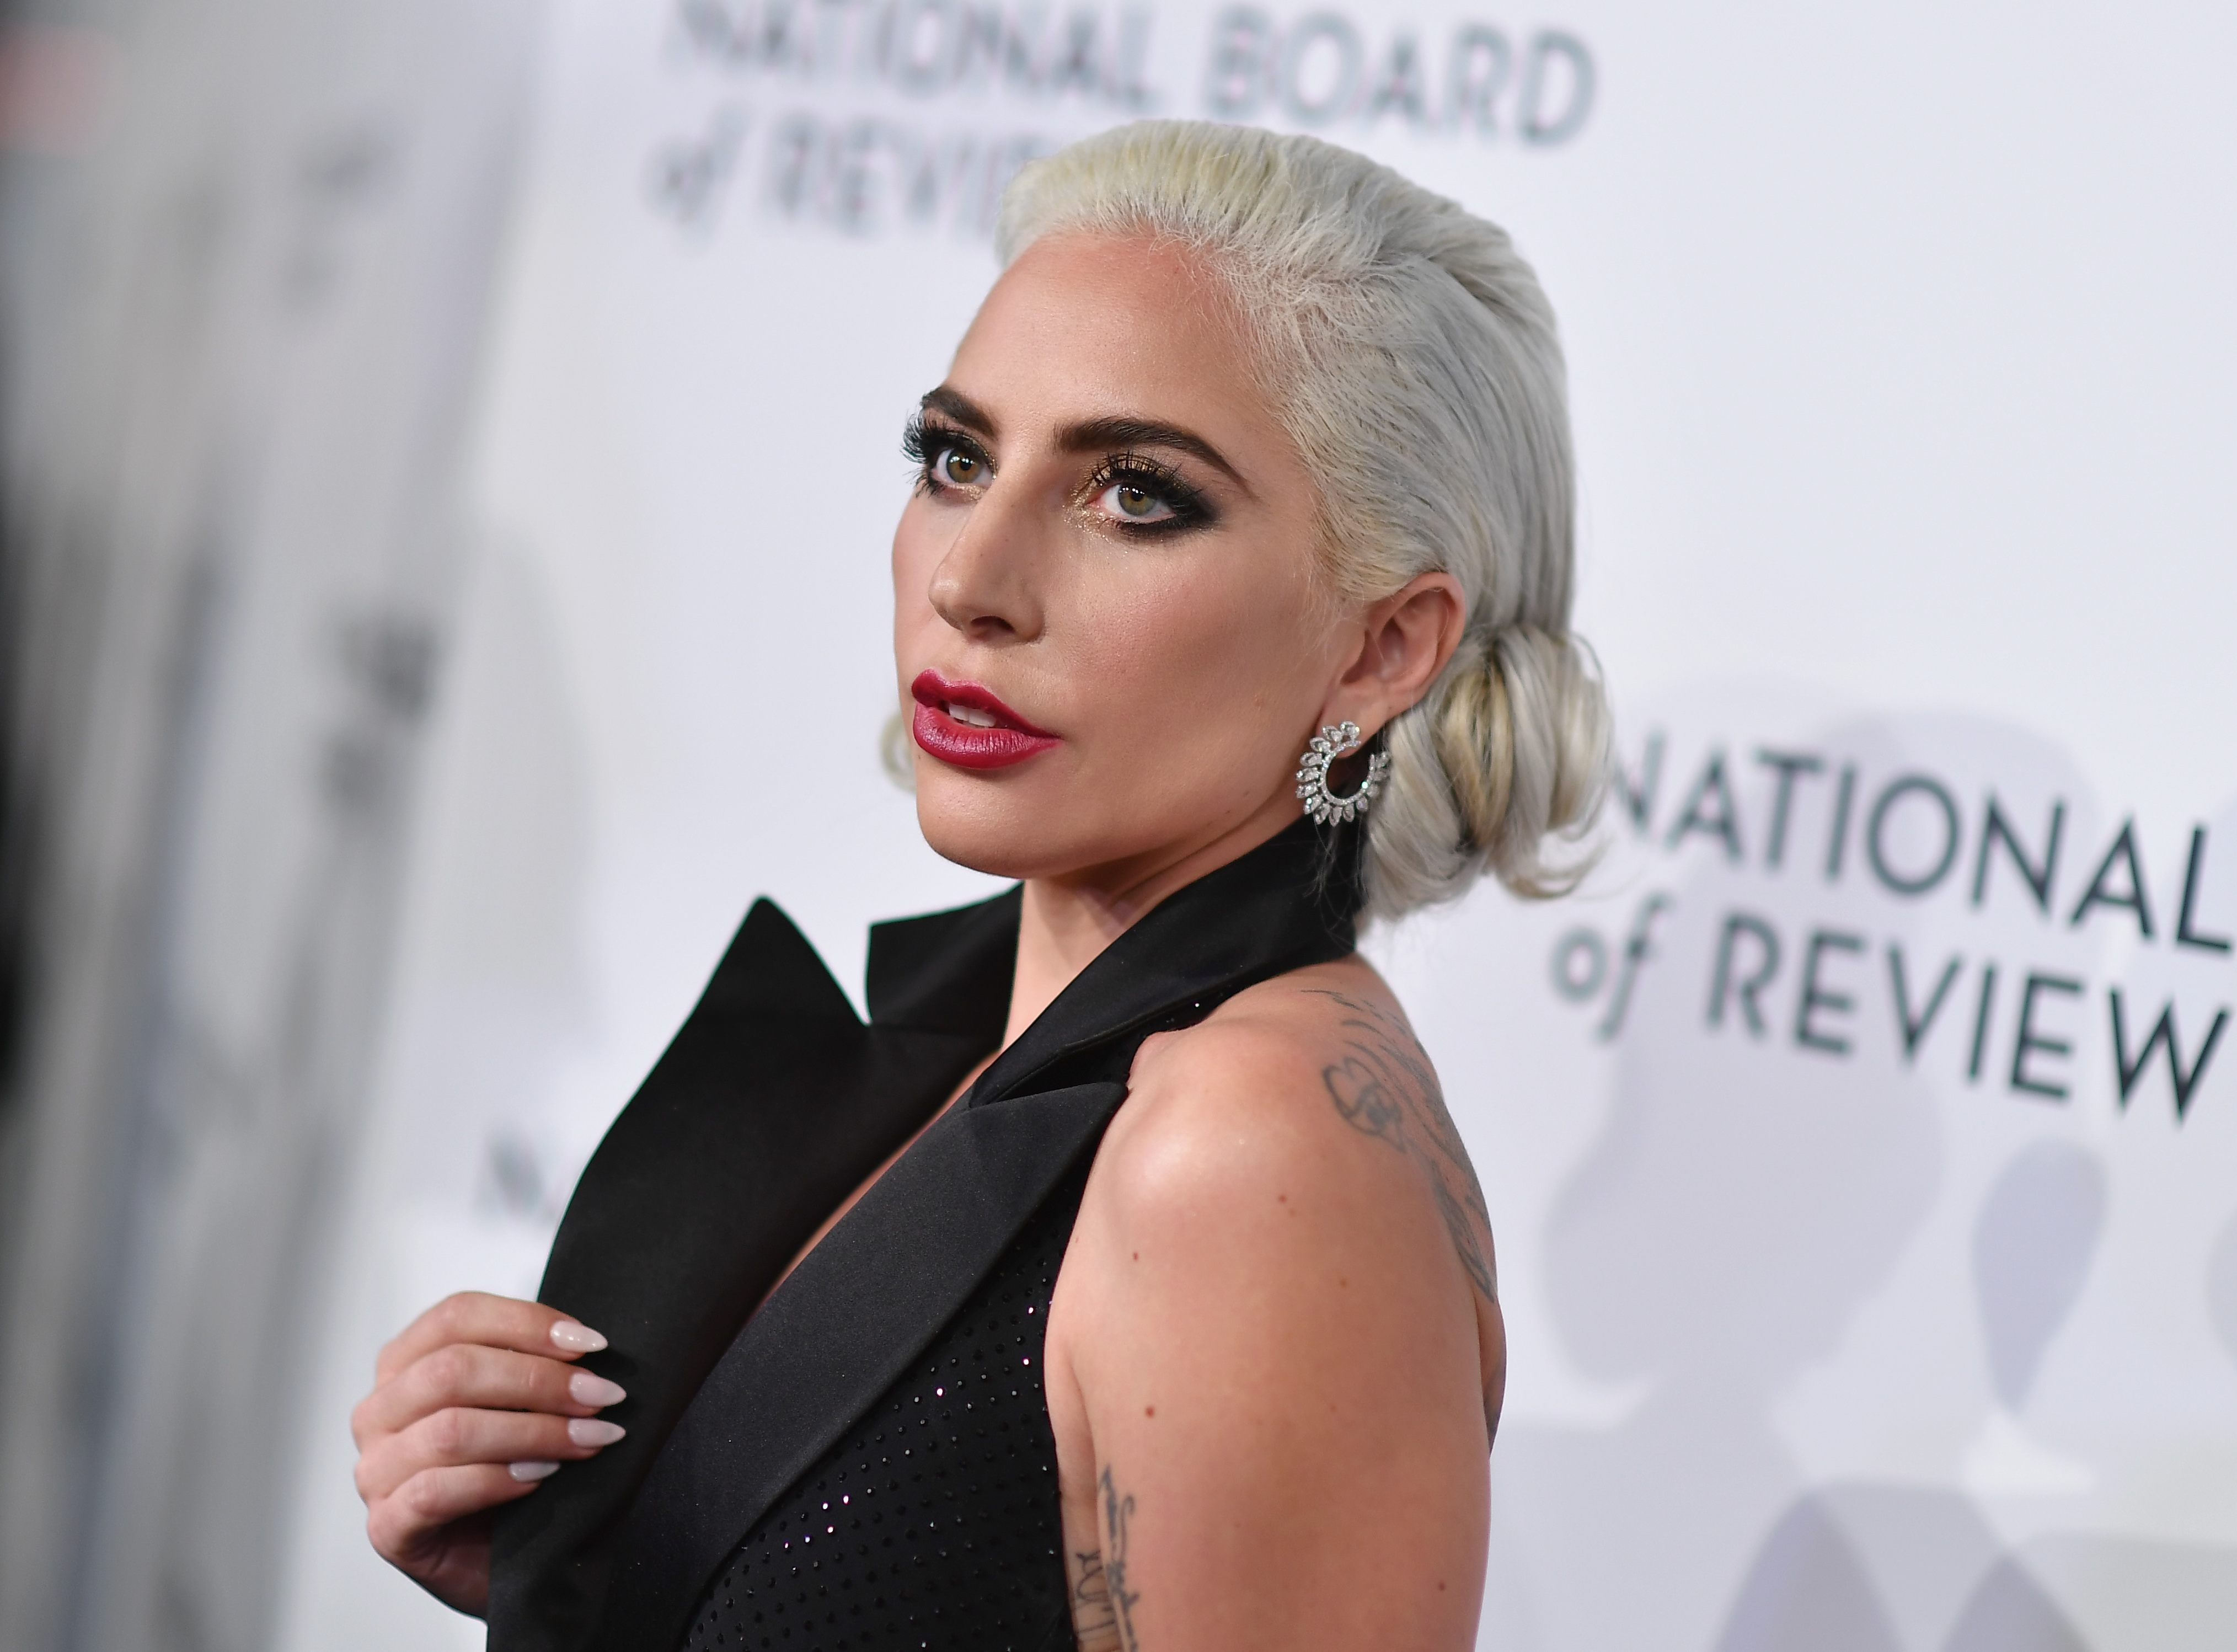 lady_gaga_gettyimages-1079461240